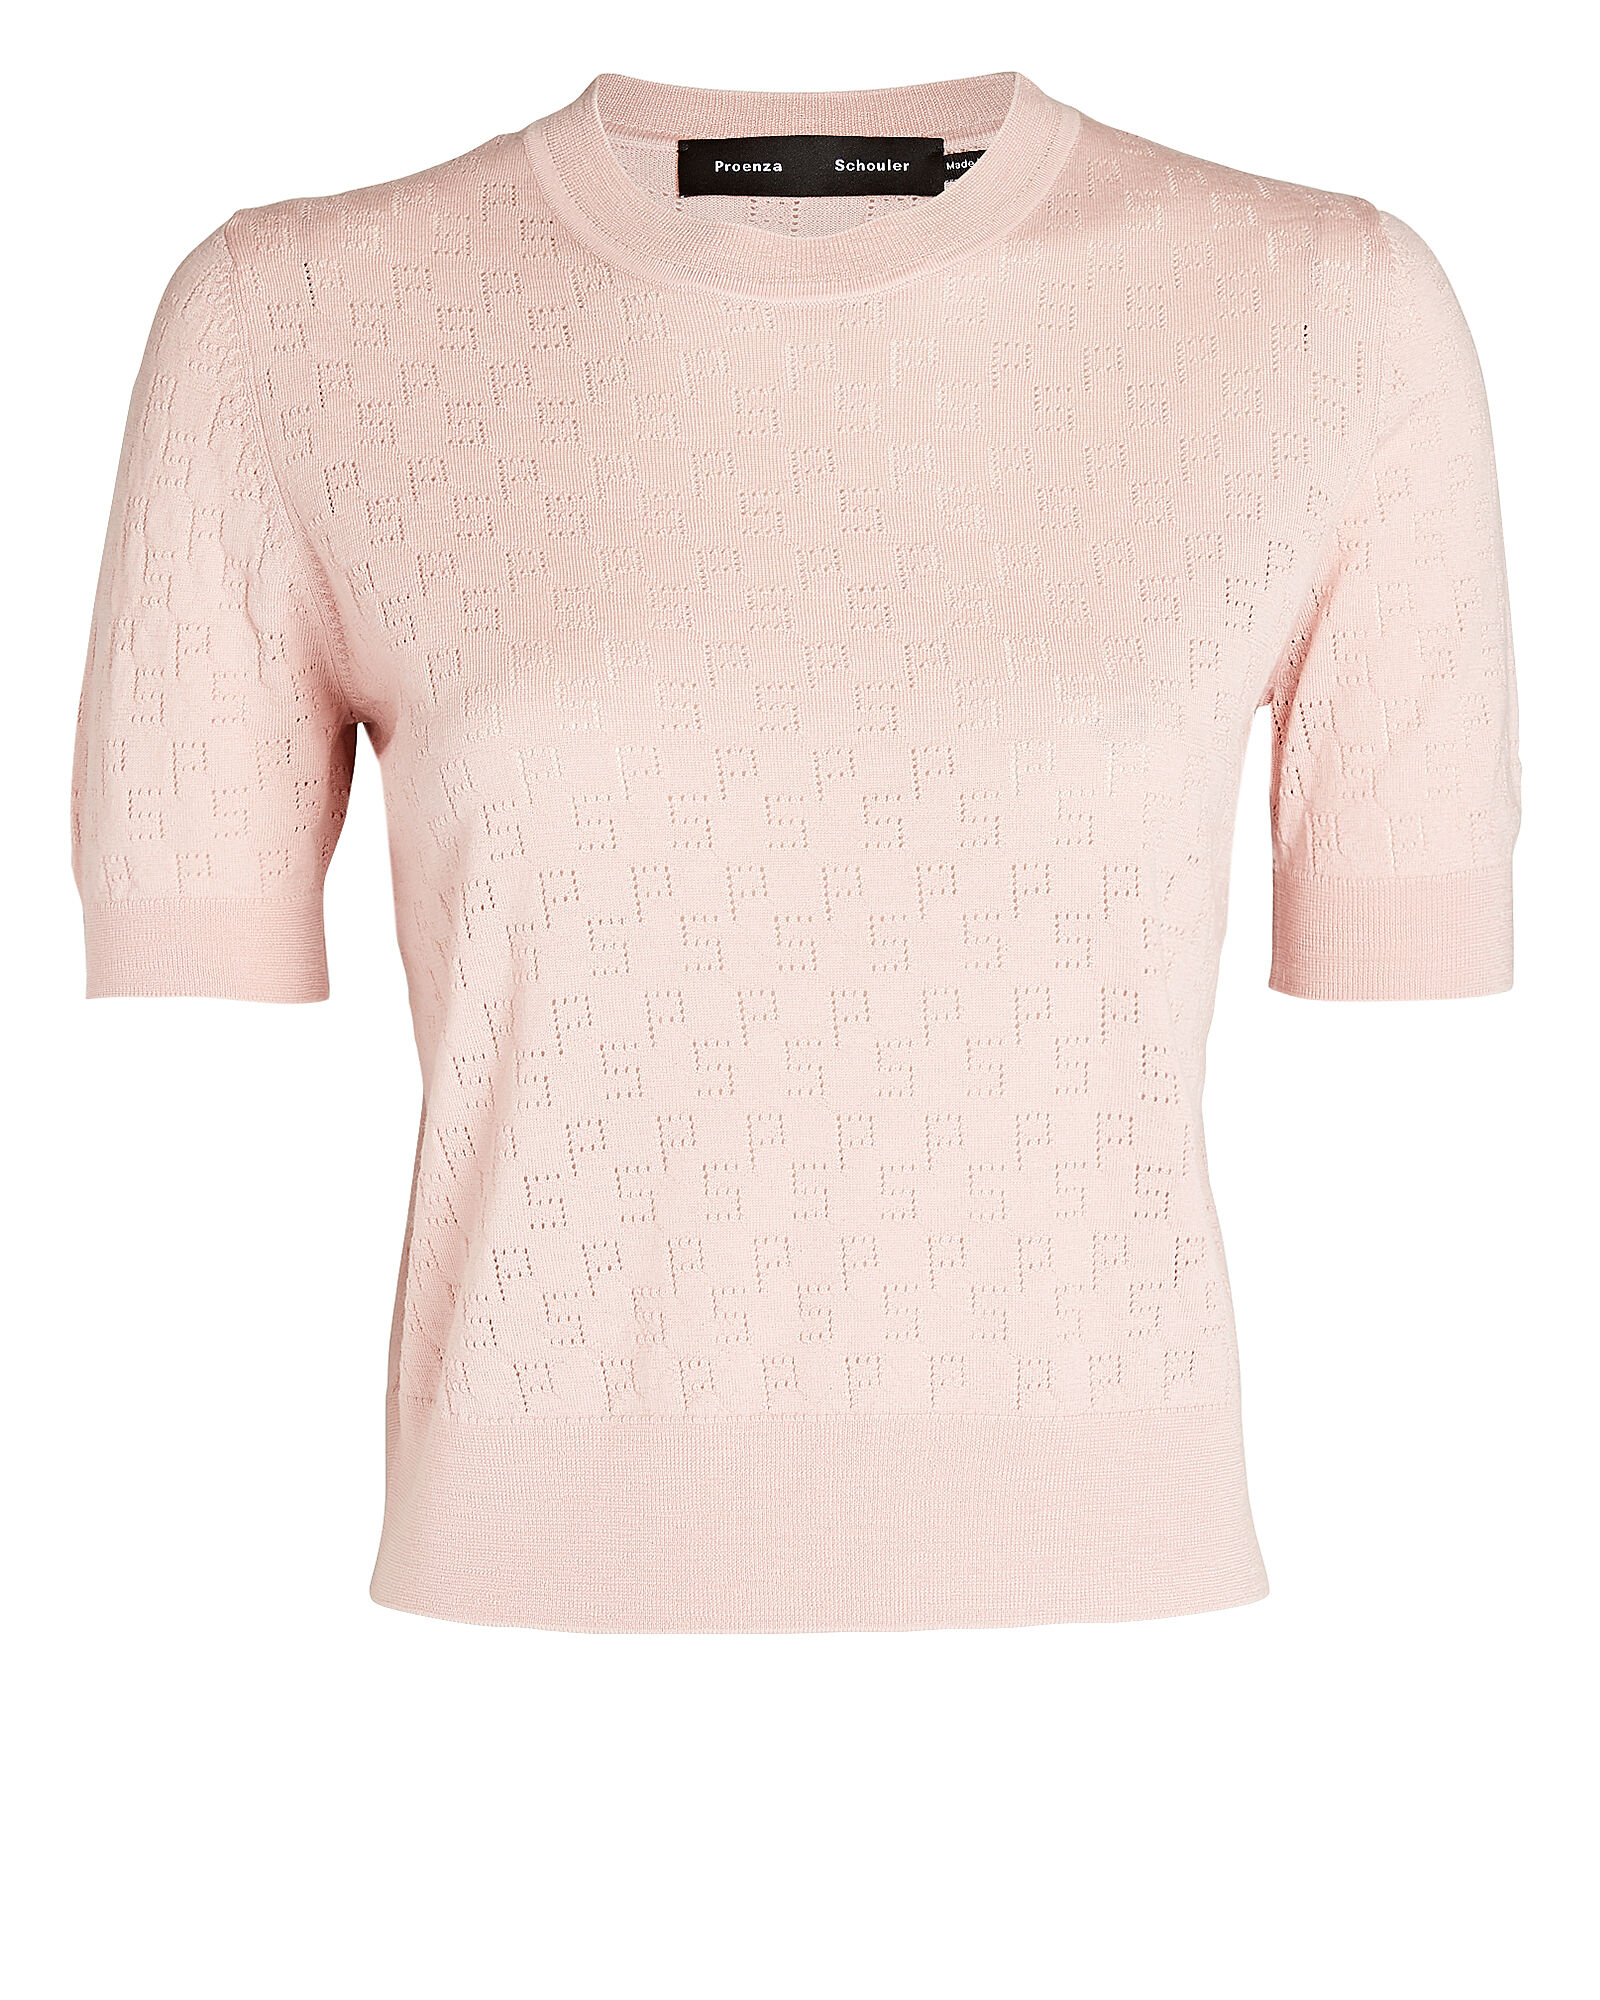 Pointelle Logo Knit Top, BLUSH, hi-res